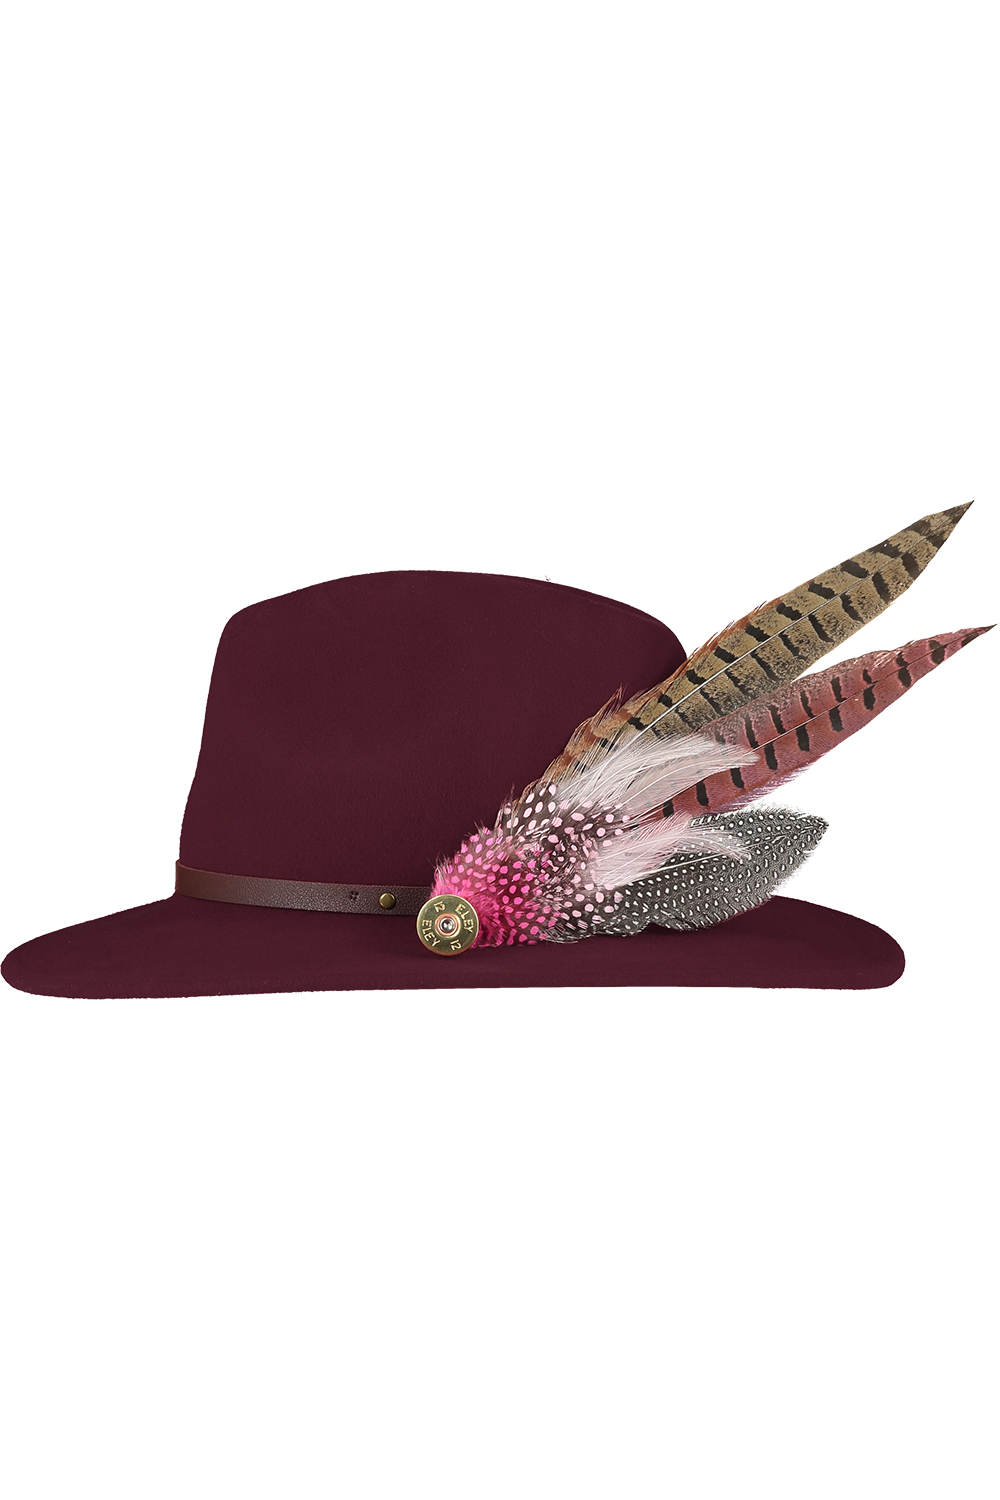 maroon hat large feather